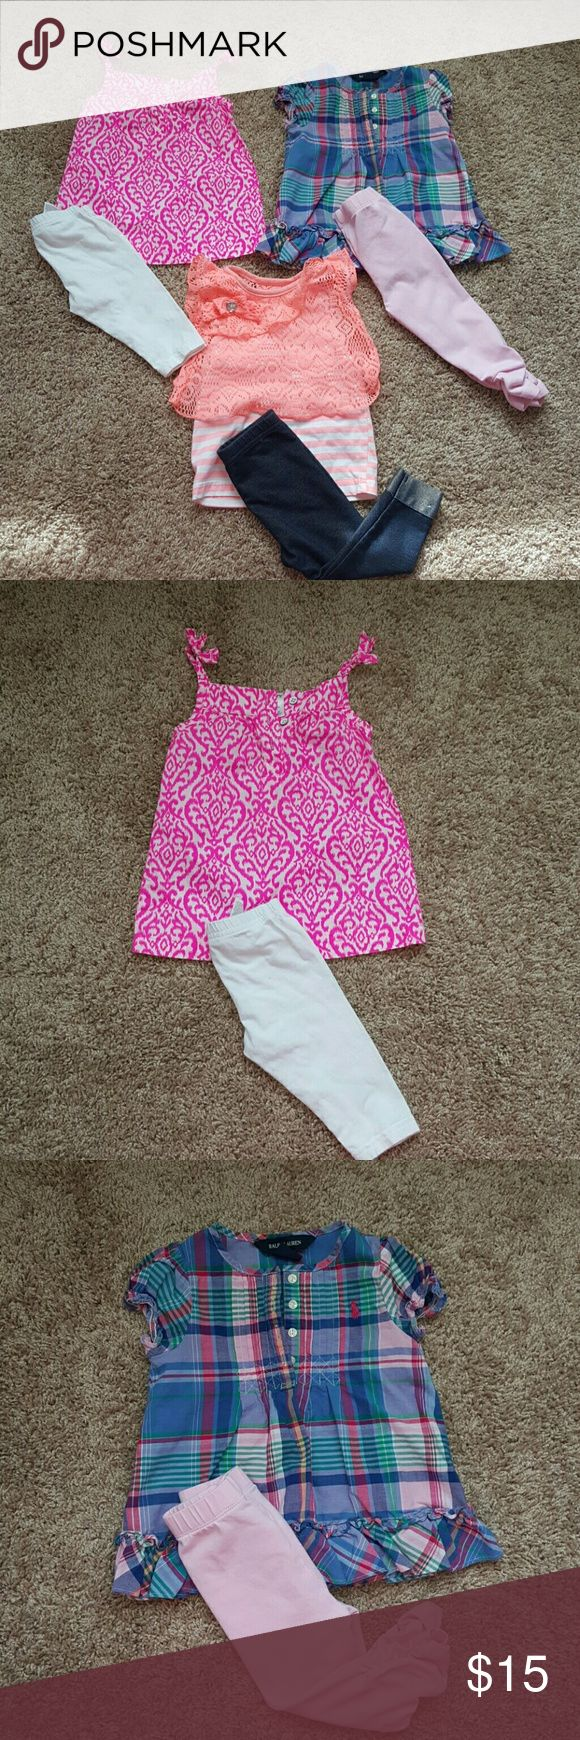 Baby Girl Matching Spring & Summer Outfits This listing is for 3 baby girl outfits.  All tagged size 12 Months.  The 1st outfit is Carters comes with white cropped leggings & pink & white shirt.  The 2nd outfit is Ralph Lauren has light pink pants with scrunching at the ankles & plaid shirt.  The 3rd outfit is Kidgets has denim jeggings that are cuffed. The cuffing can not be undone it is sewn that way. The cuffing has some slight piling which gives it a destroyed denim look. Not noticeable…